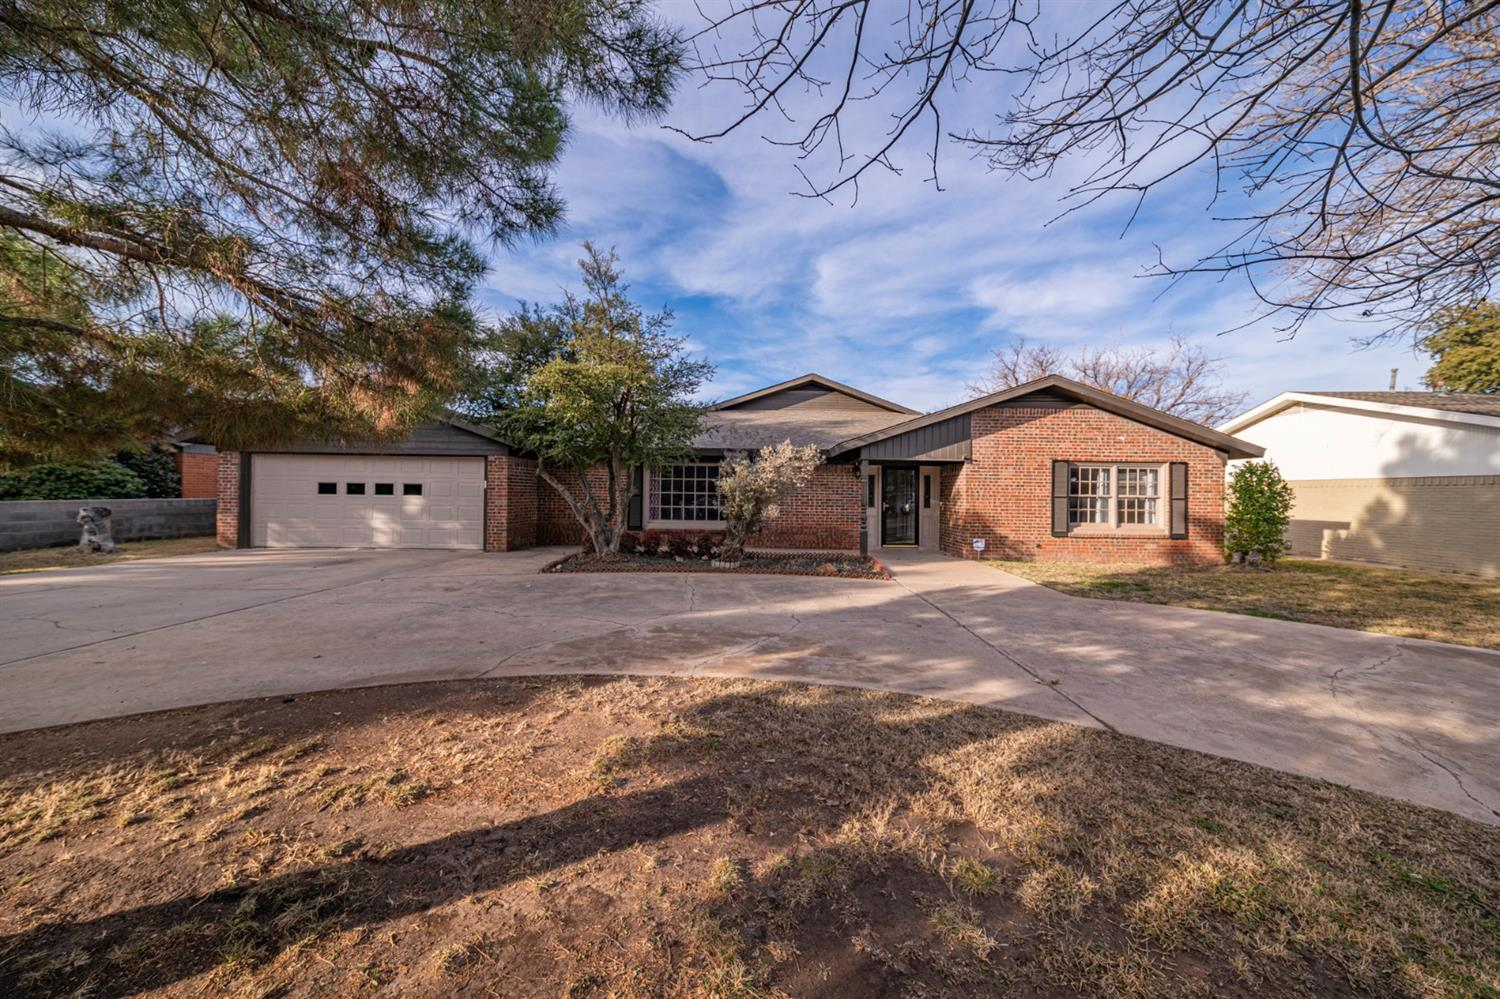 Gorgeous updated 4 bedroom 4 bath home in Great location , home offers wood floors and tile through out home , New Fridge, Stove & Microwave , Washer and dryer will convey with home, This one won't last long ! Call your Realtor today for showing .